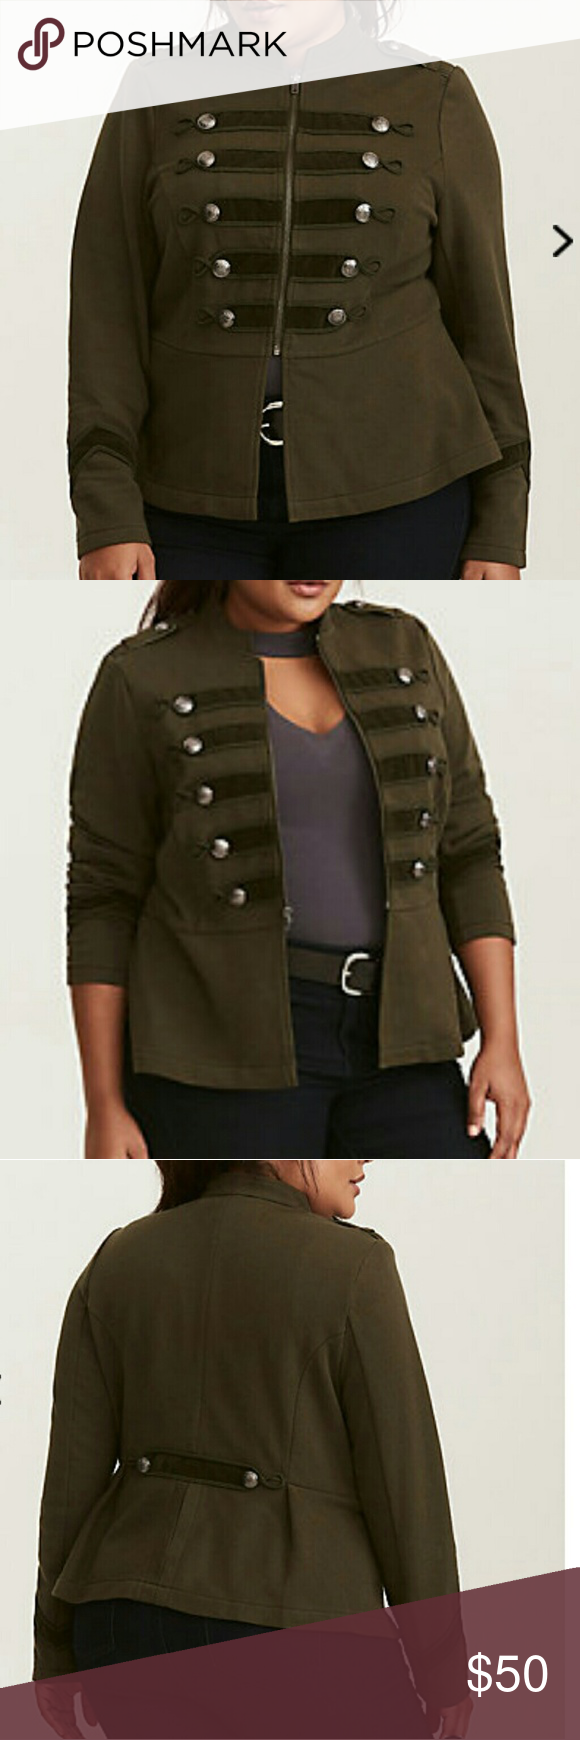 39a692d5e2e New Torrid Embellished Military Jacket Brand New Torrid Embellished Zip  Front Military Jacket. Thick olive green knit gives a high-ranking look and  feel to ...